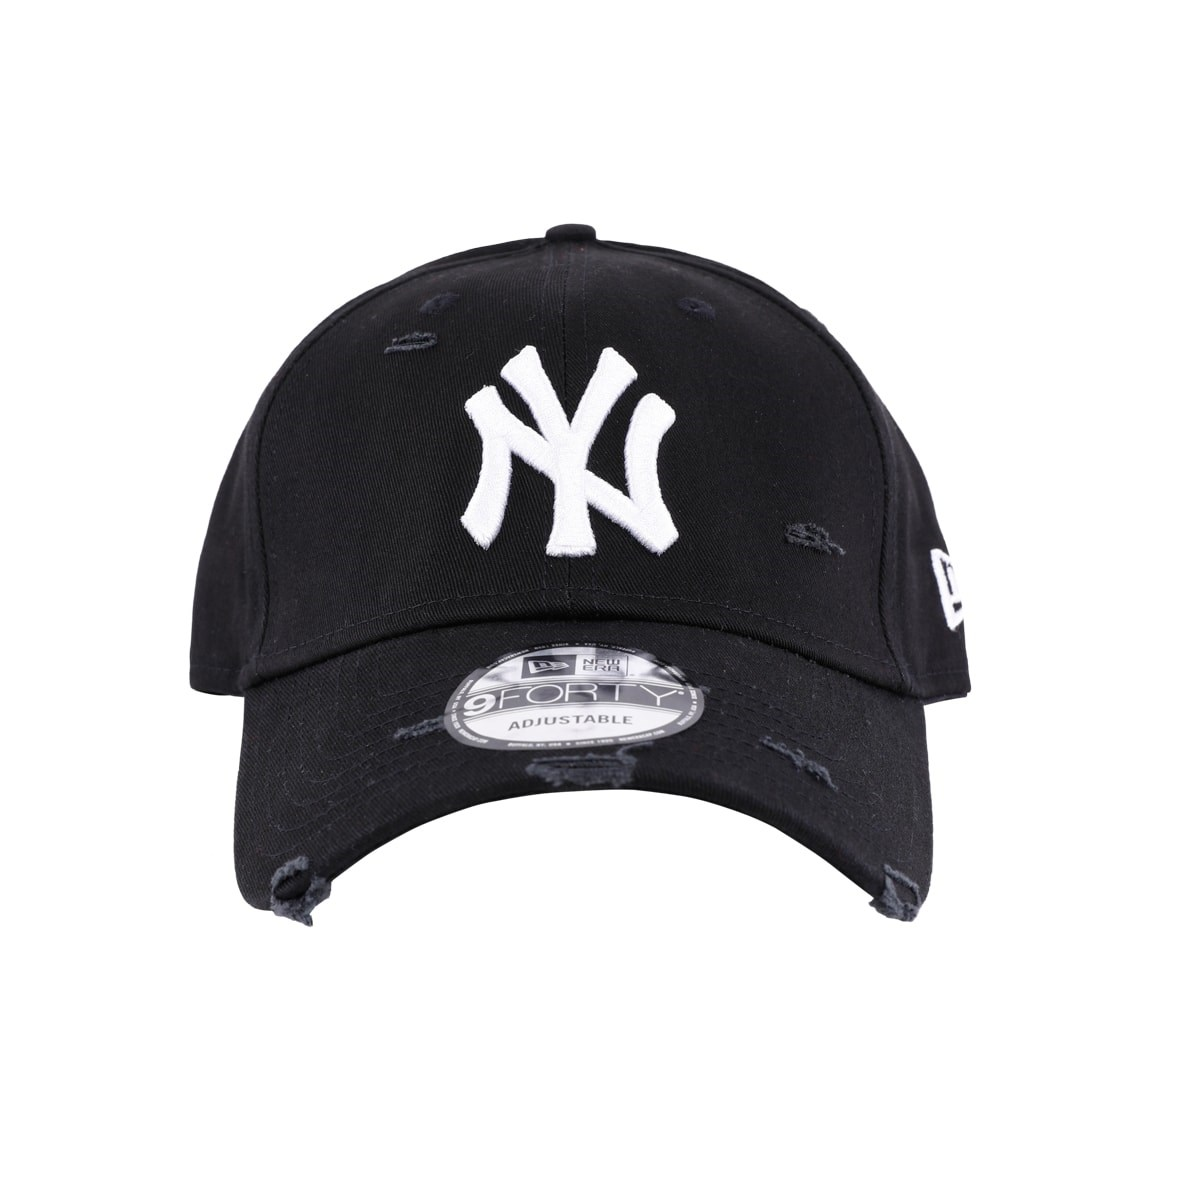 New Era Şapka - Distressed Seasonal 940 New York Yankees Black 3ed672a693